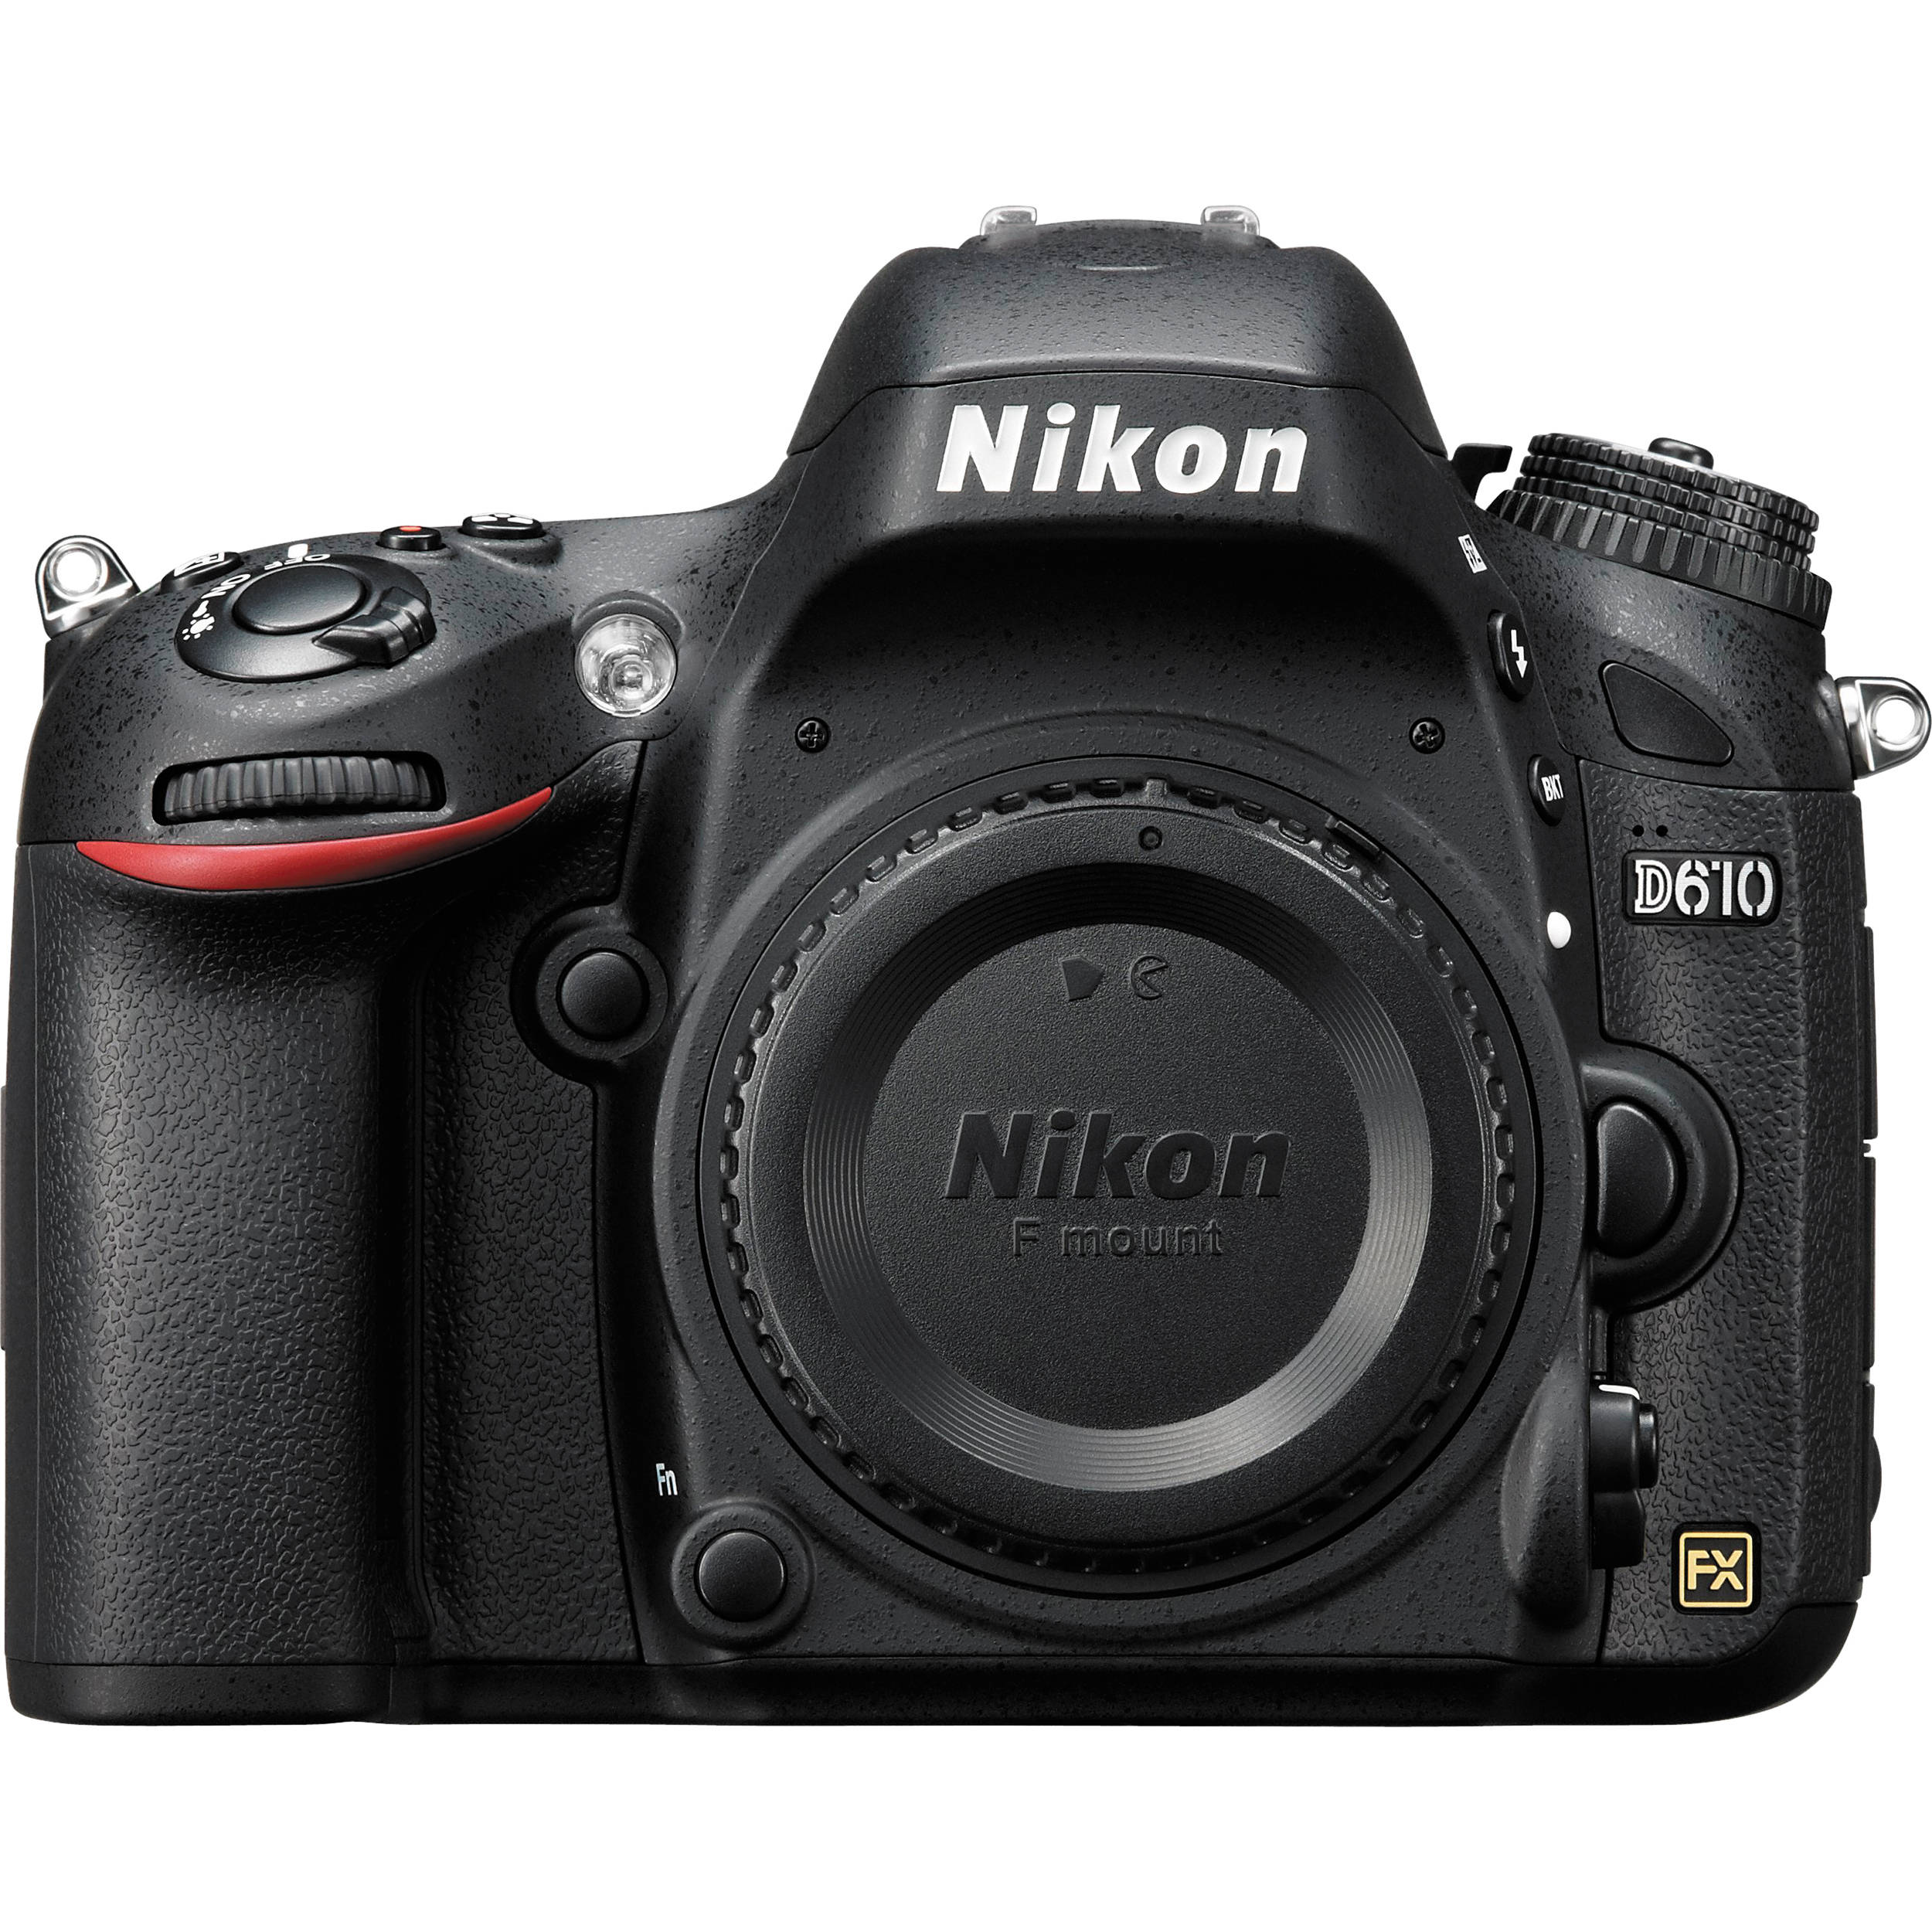 Camera Where Can I Sell My Dslr Camera nikon d610 dslr camera body 1540 bh photo video only